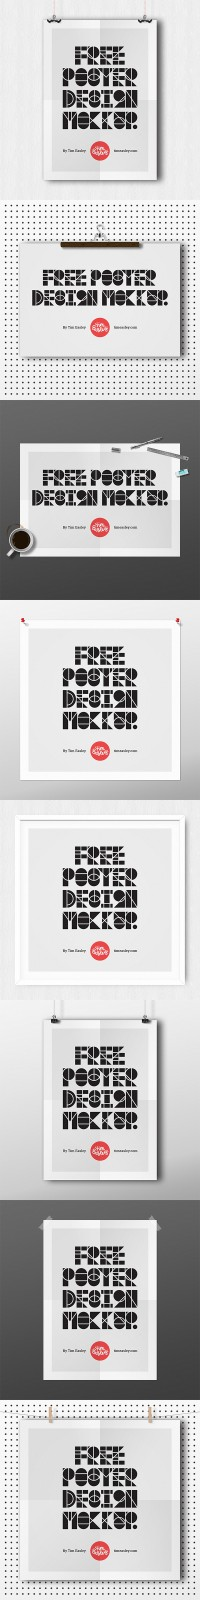 Poster Design Mockups - FreebiesXpress